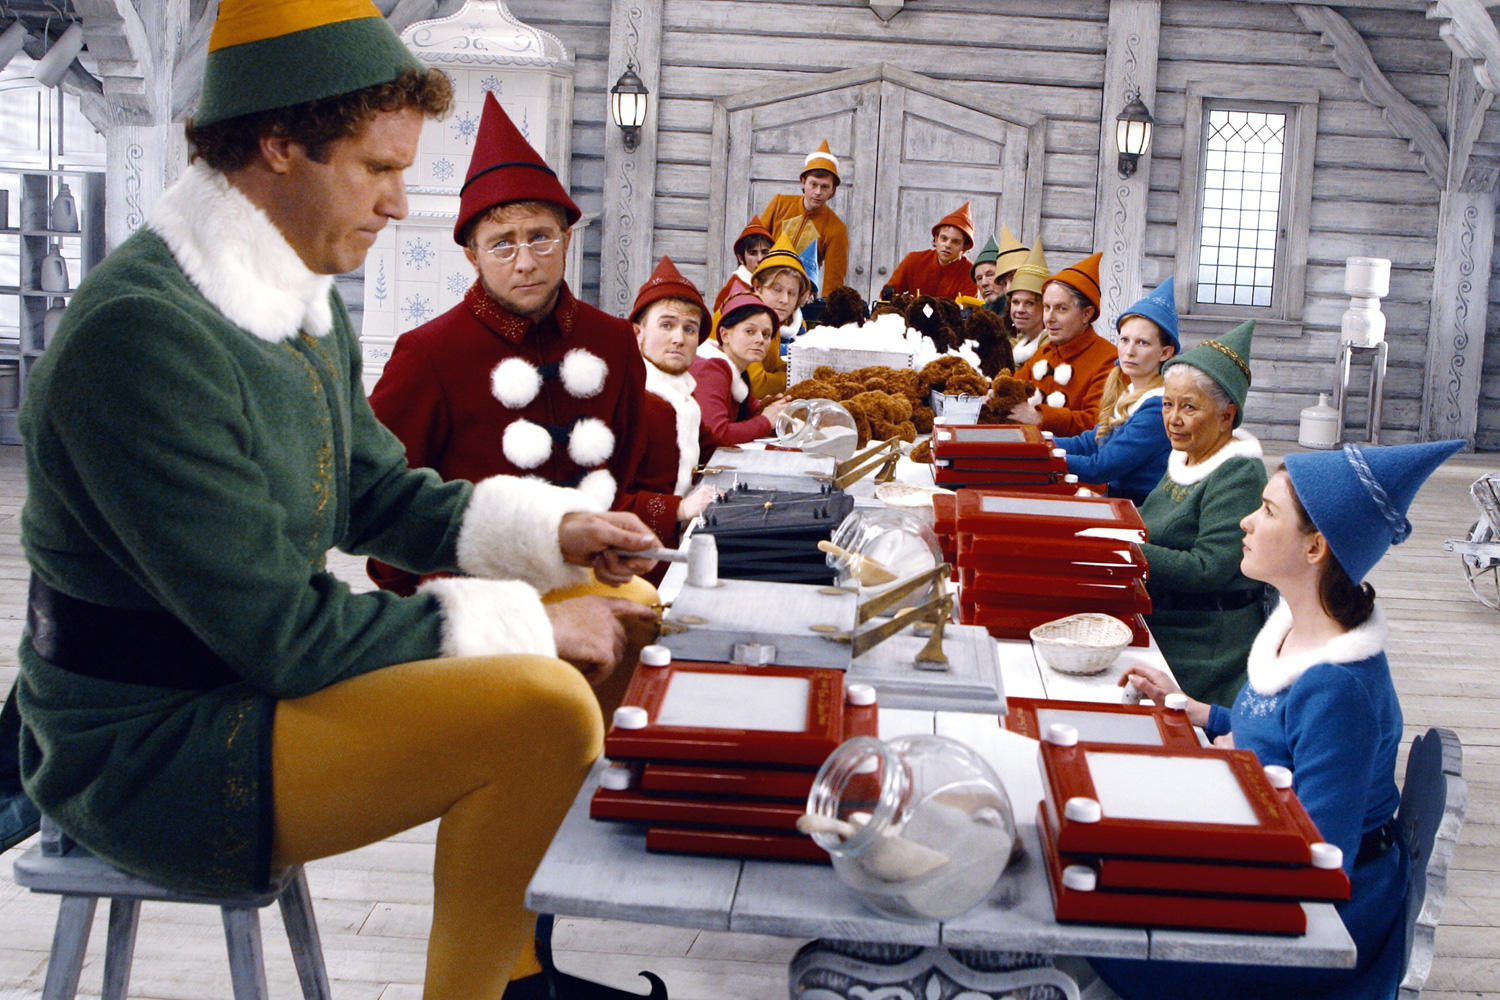 12 days of christmas comedies - Best Christmas Comedies